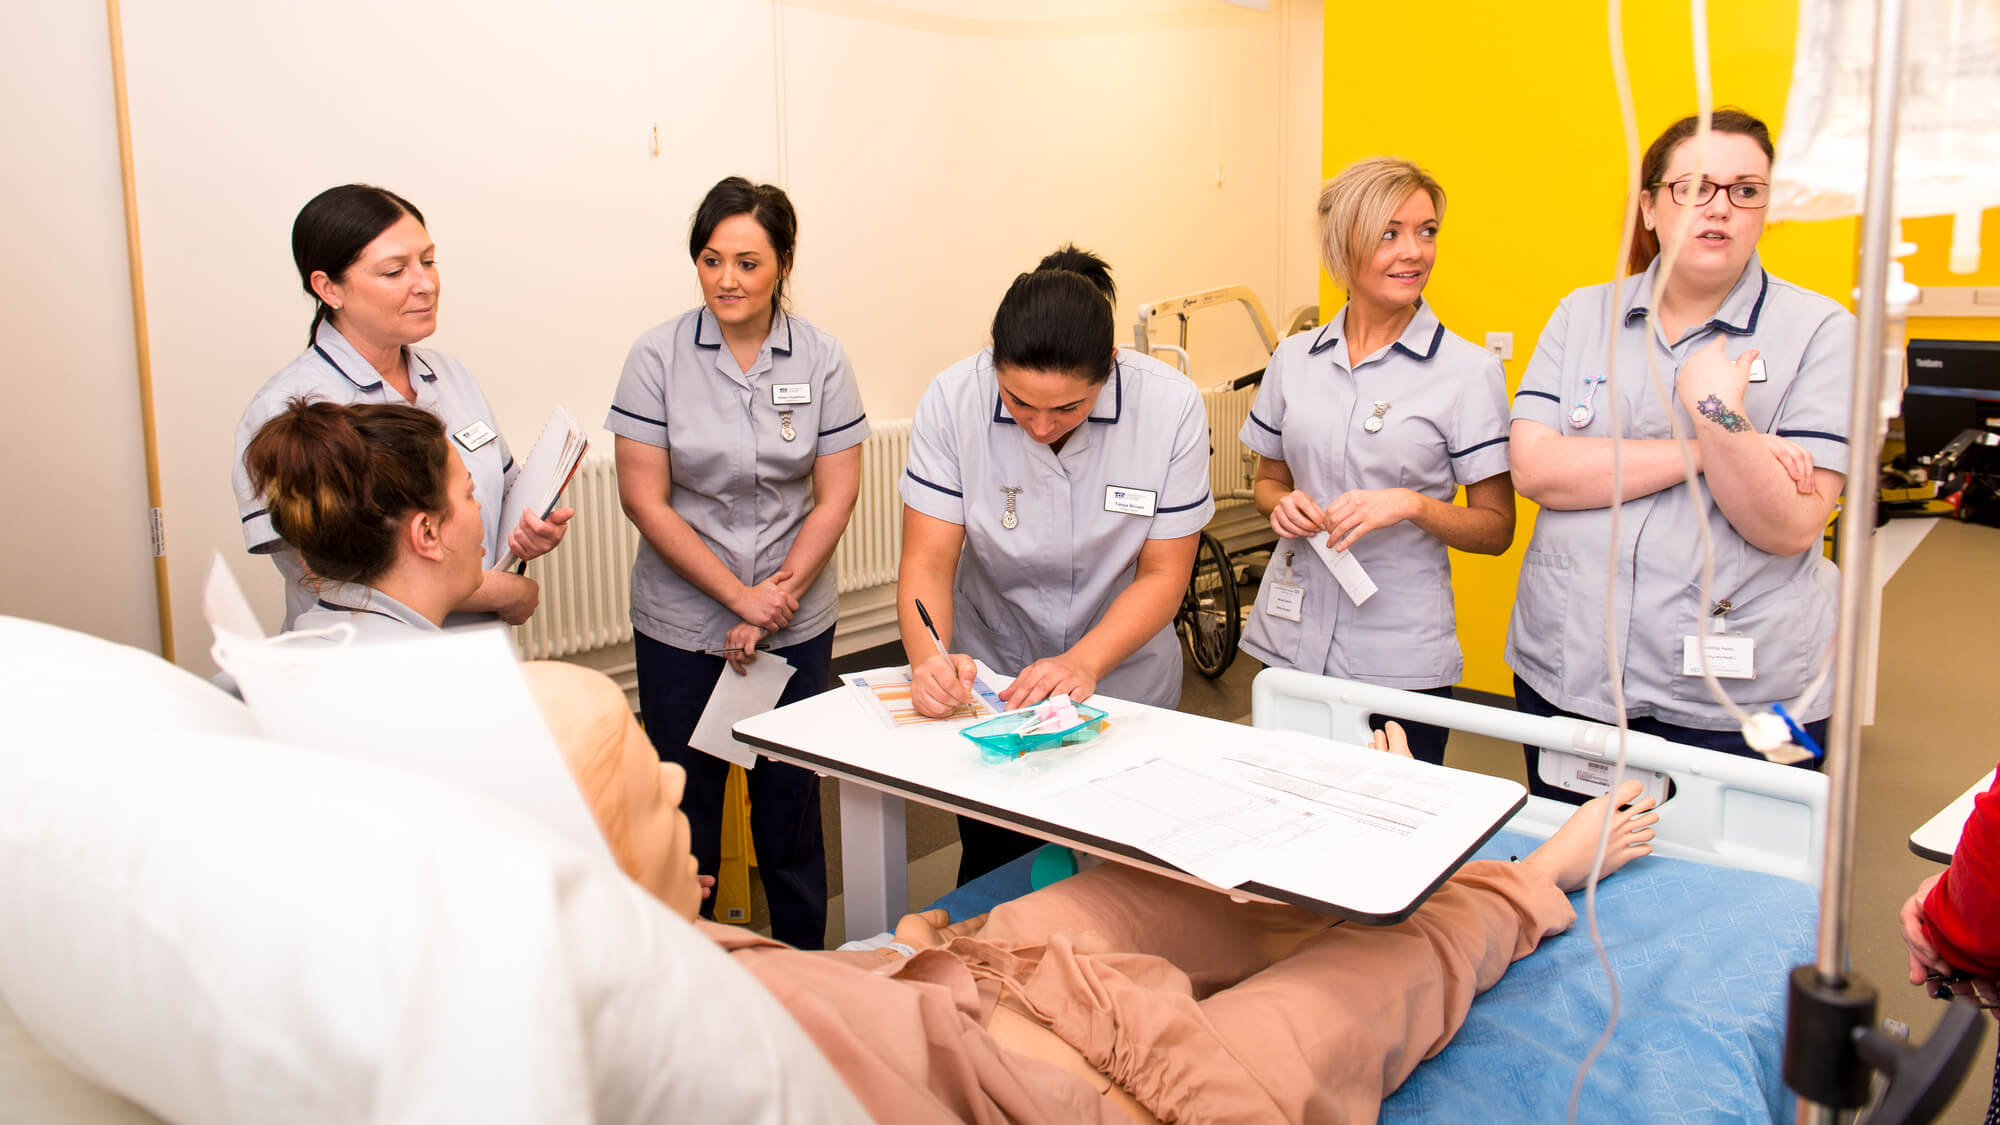 Students in the mock ward standing around a bed looking after an artificial patient